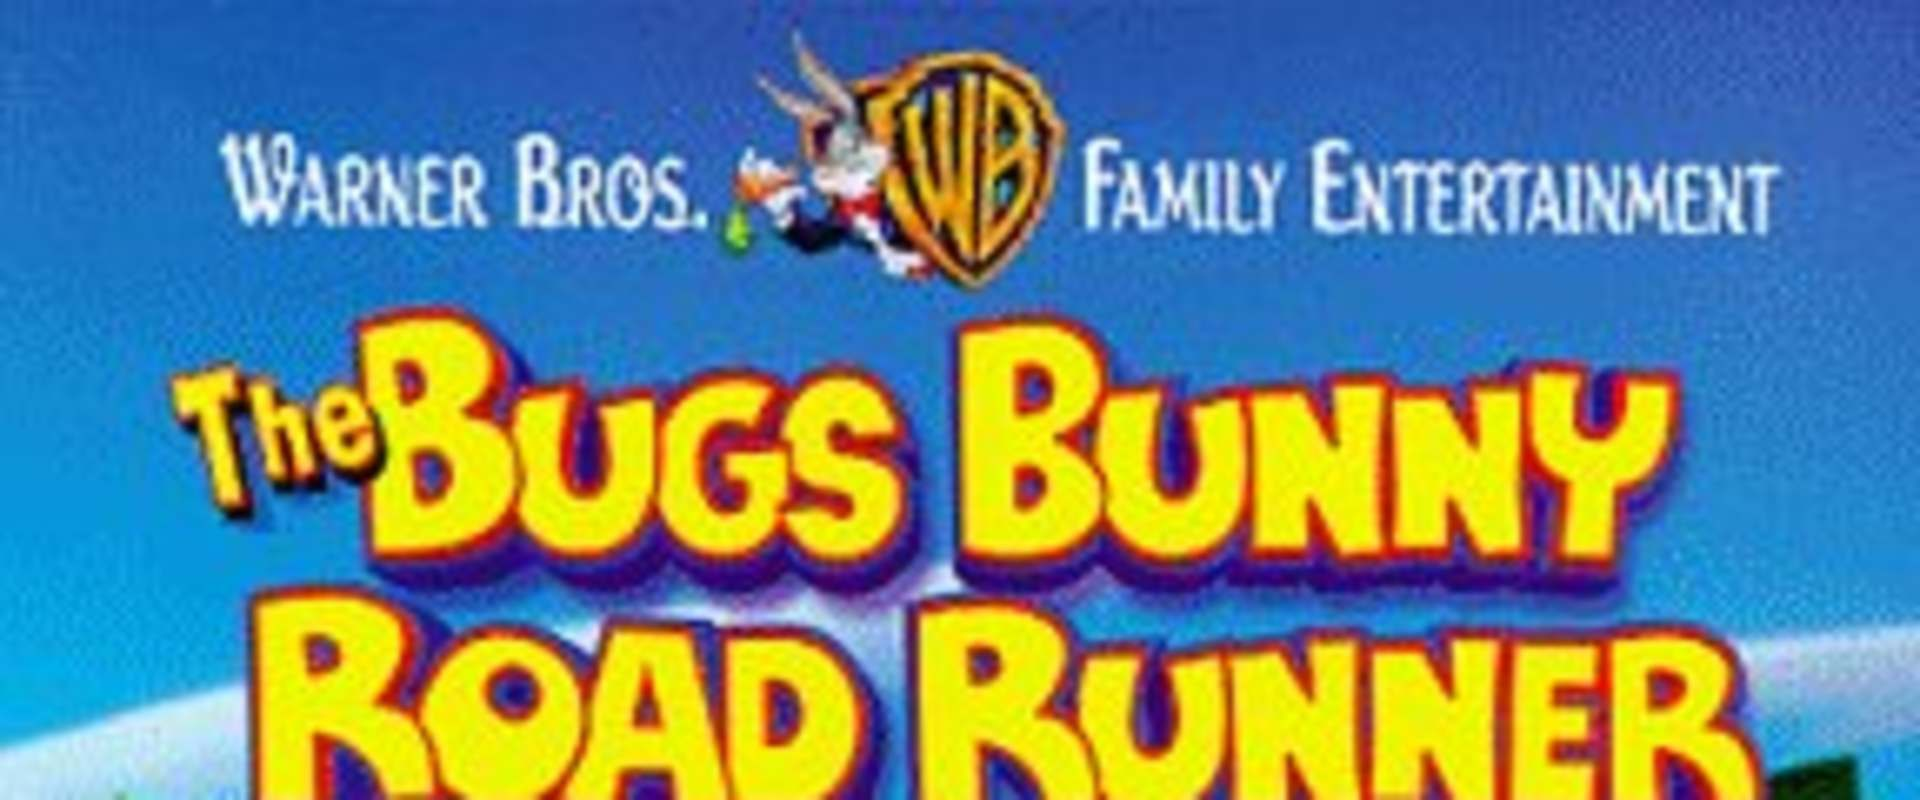 watch the bugs bunnyroadrunner movie on netflix today